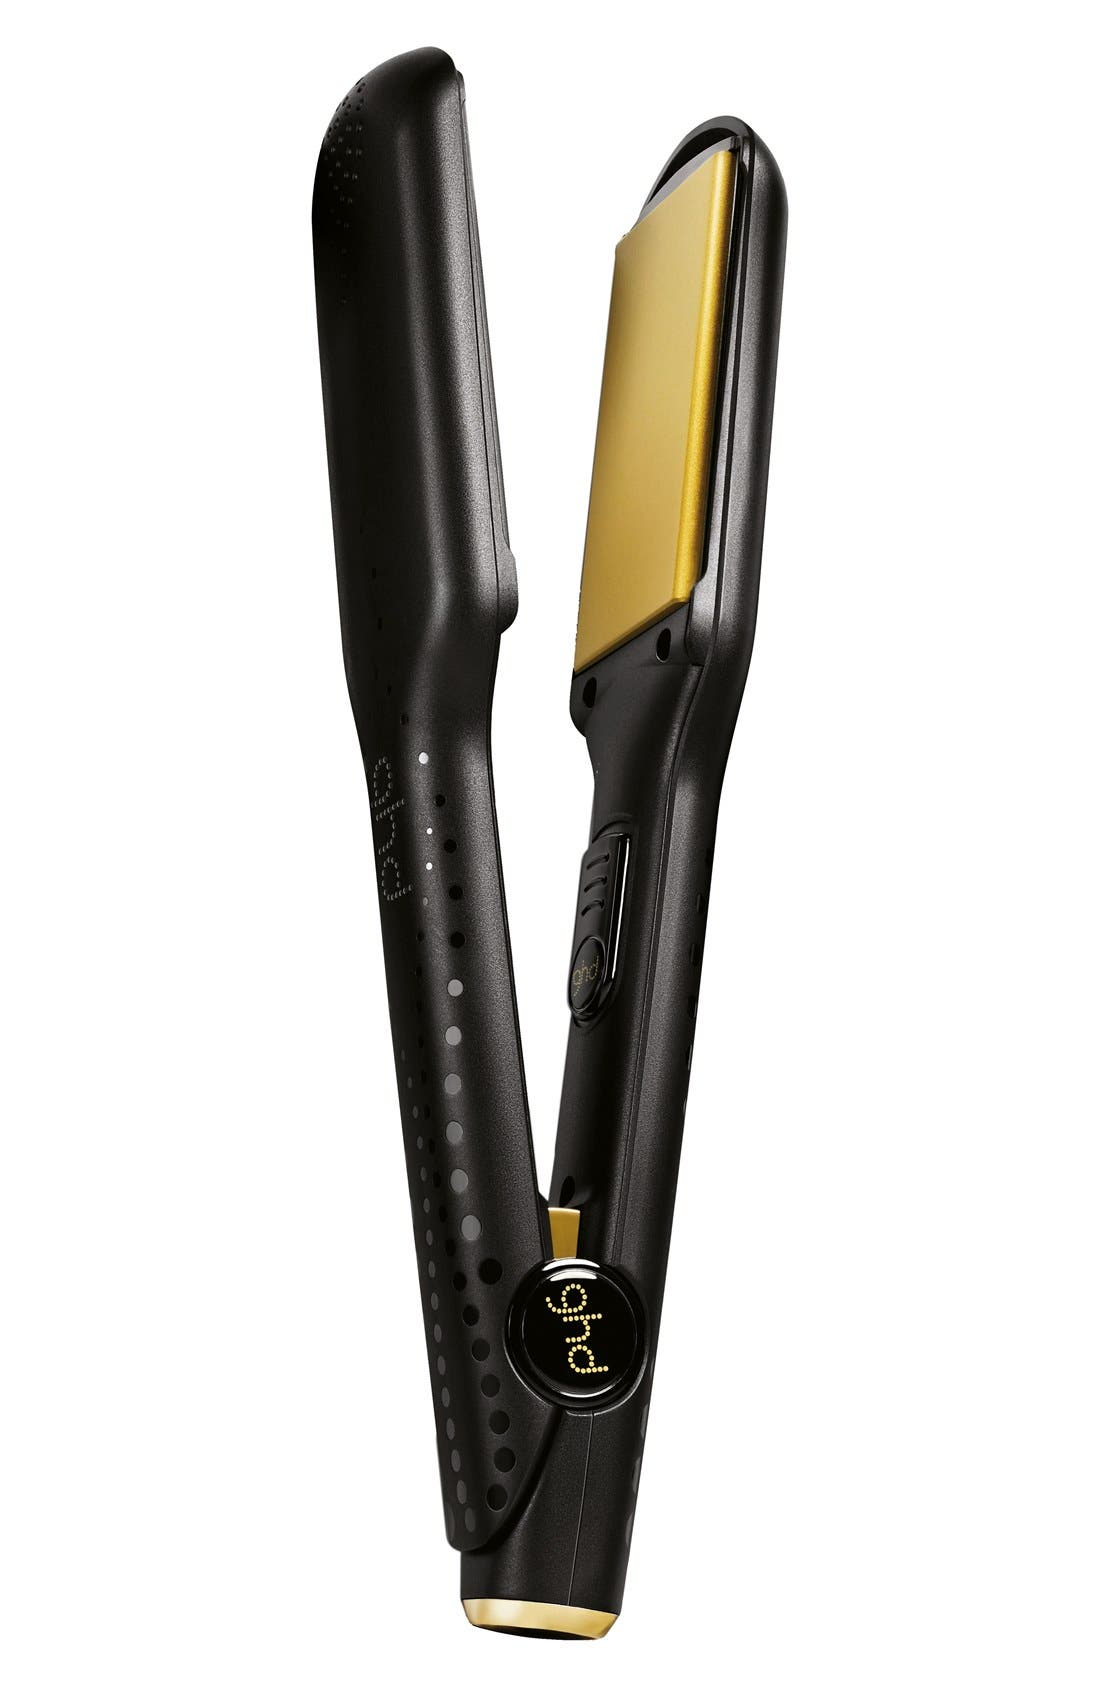 GHD Gold Series Professional Styler